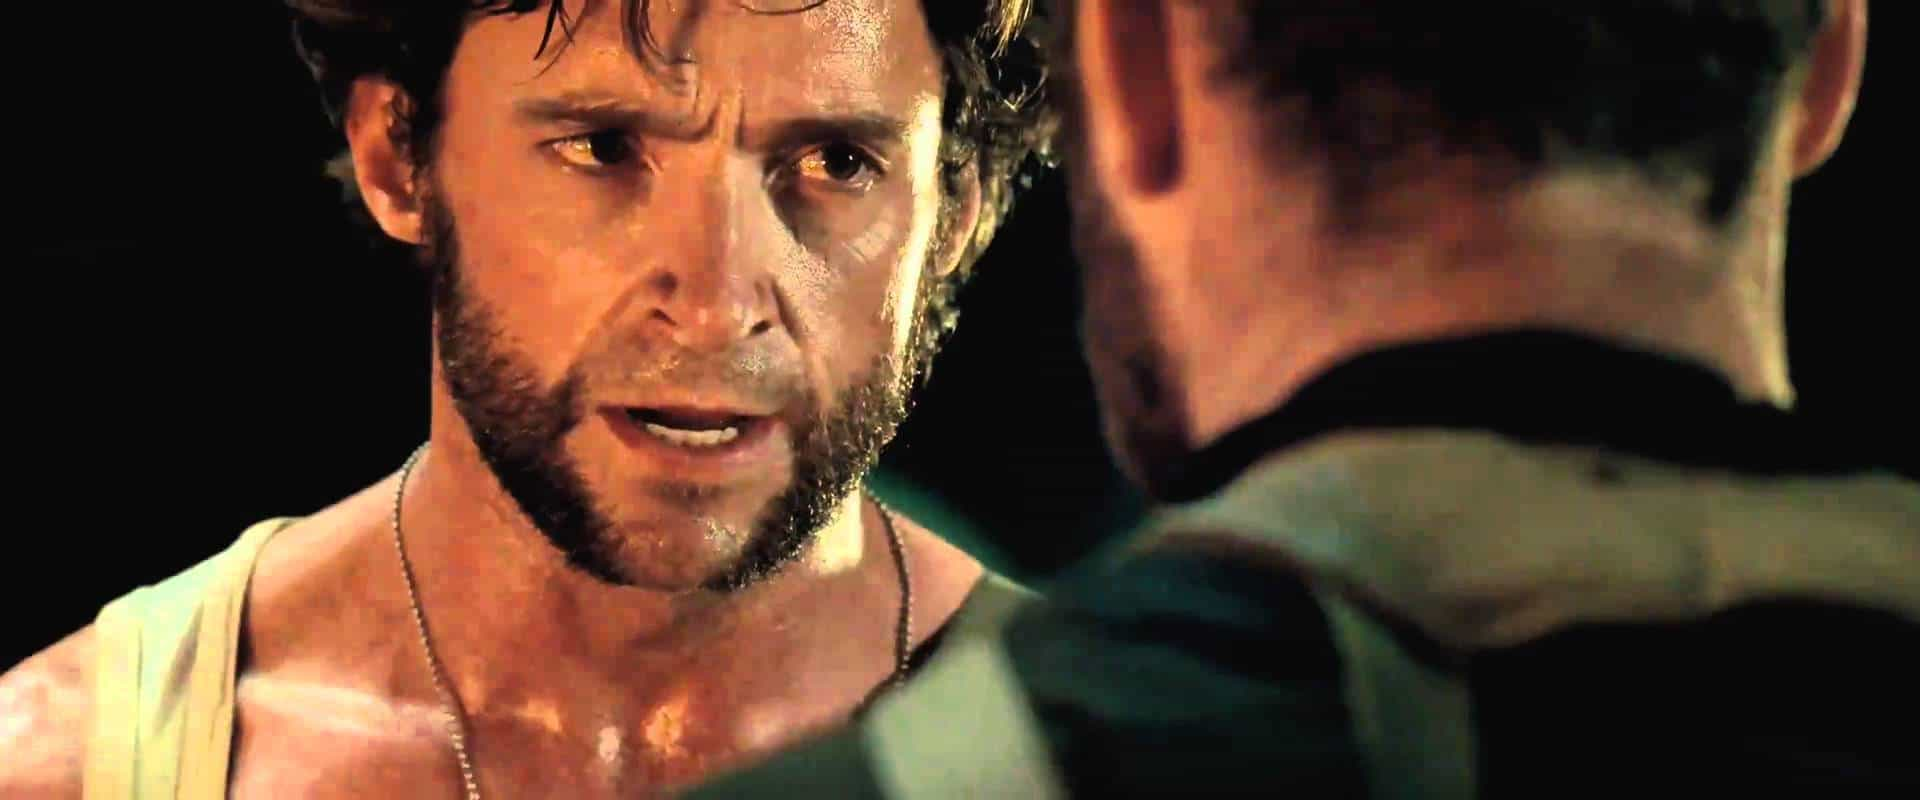 New X Men Origins Wolverine Trailer Dravens Tales From The Crypt